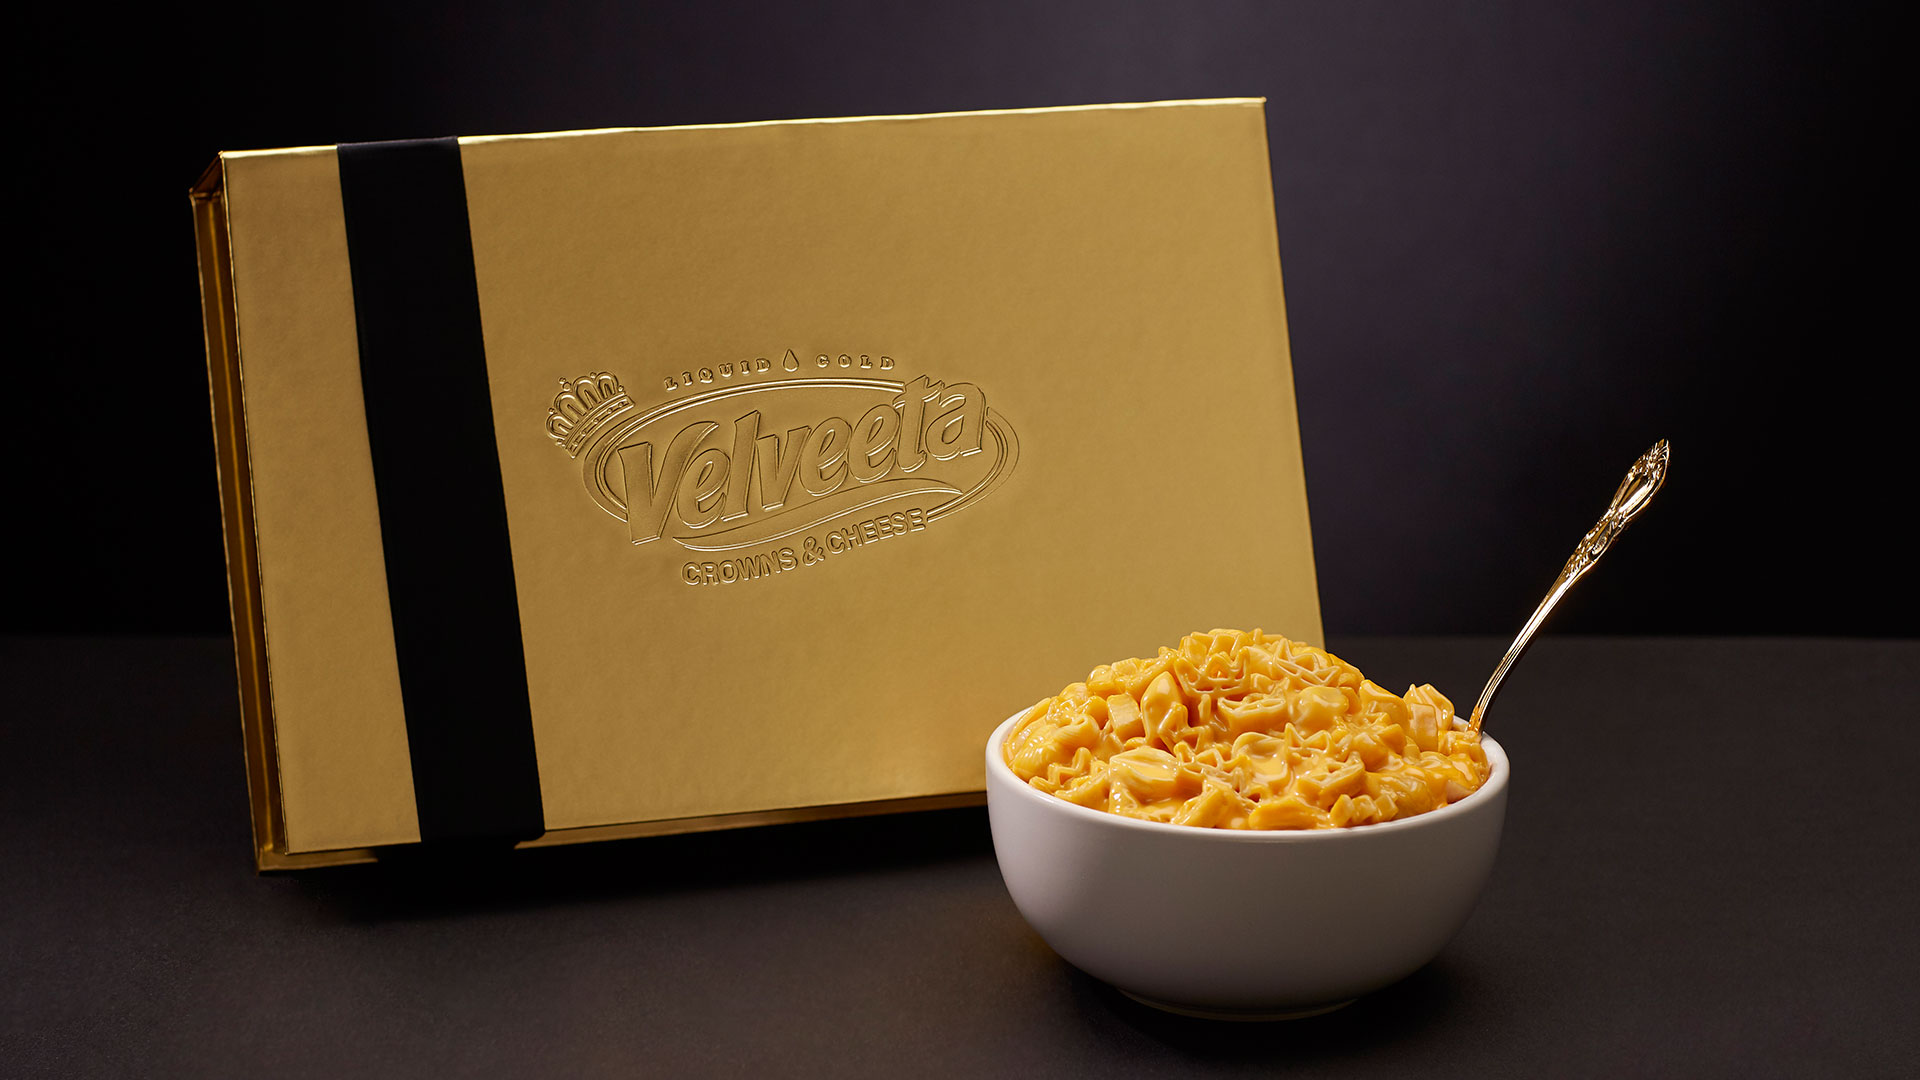 Southern Living Royal Wedding Velveeta